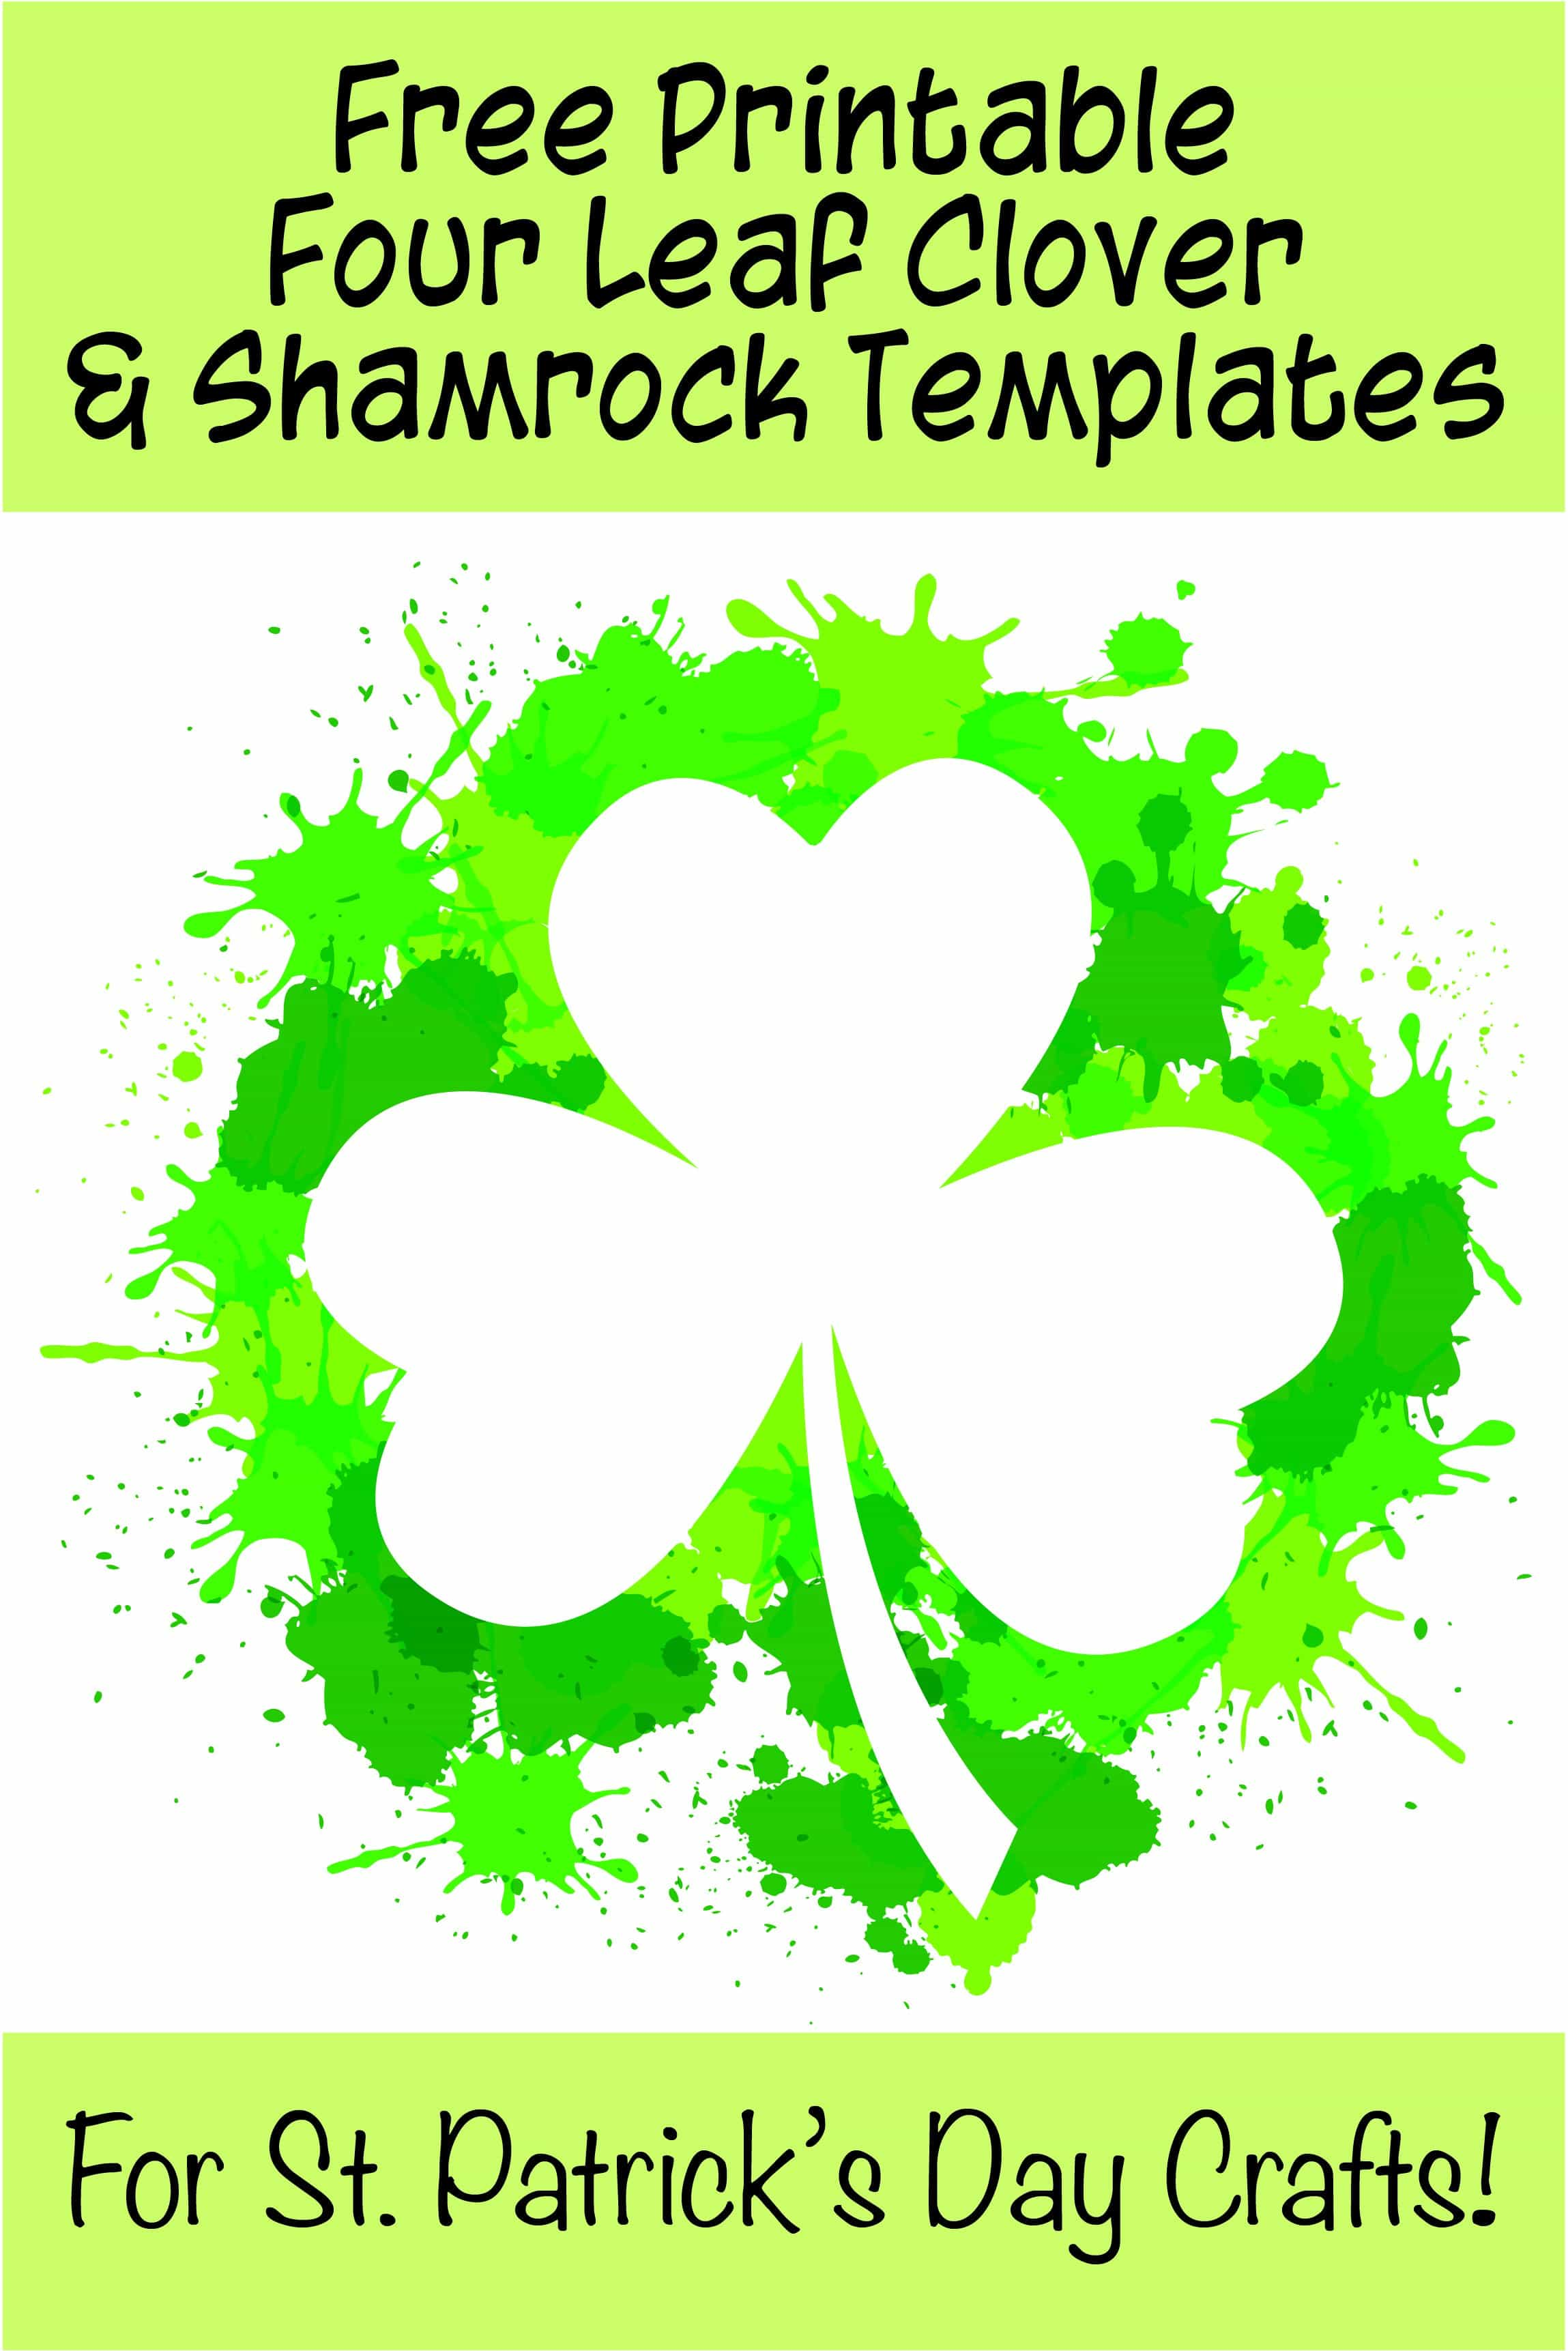 free printable four leaf clover templates for St Patrick's Day crafts